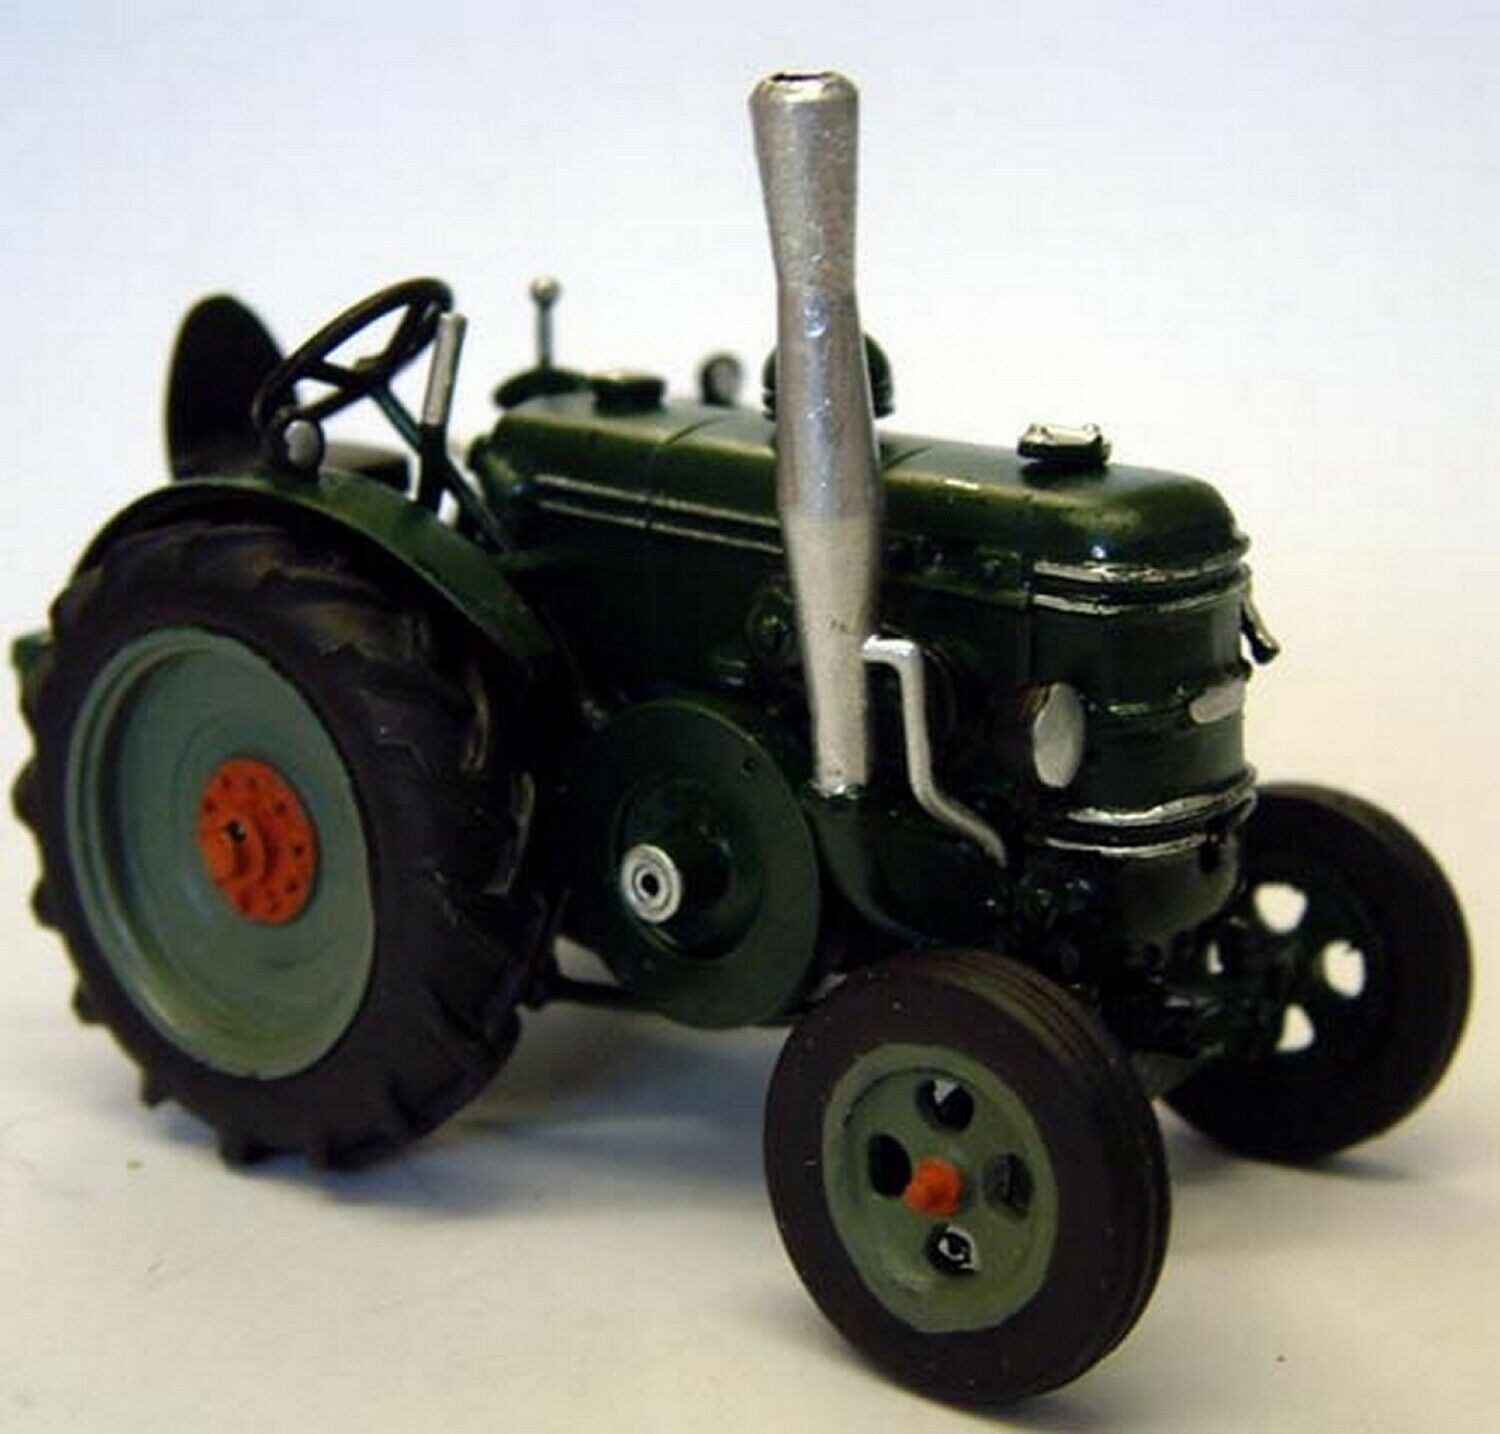 Field Marshall Tractor Series 2 M10 UNPAINTED O Scale Langley Models Kit 1 43